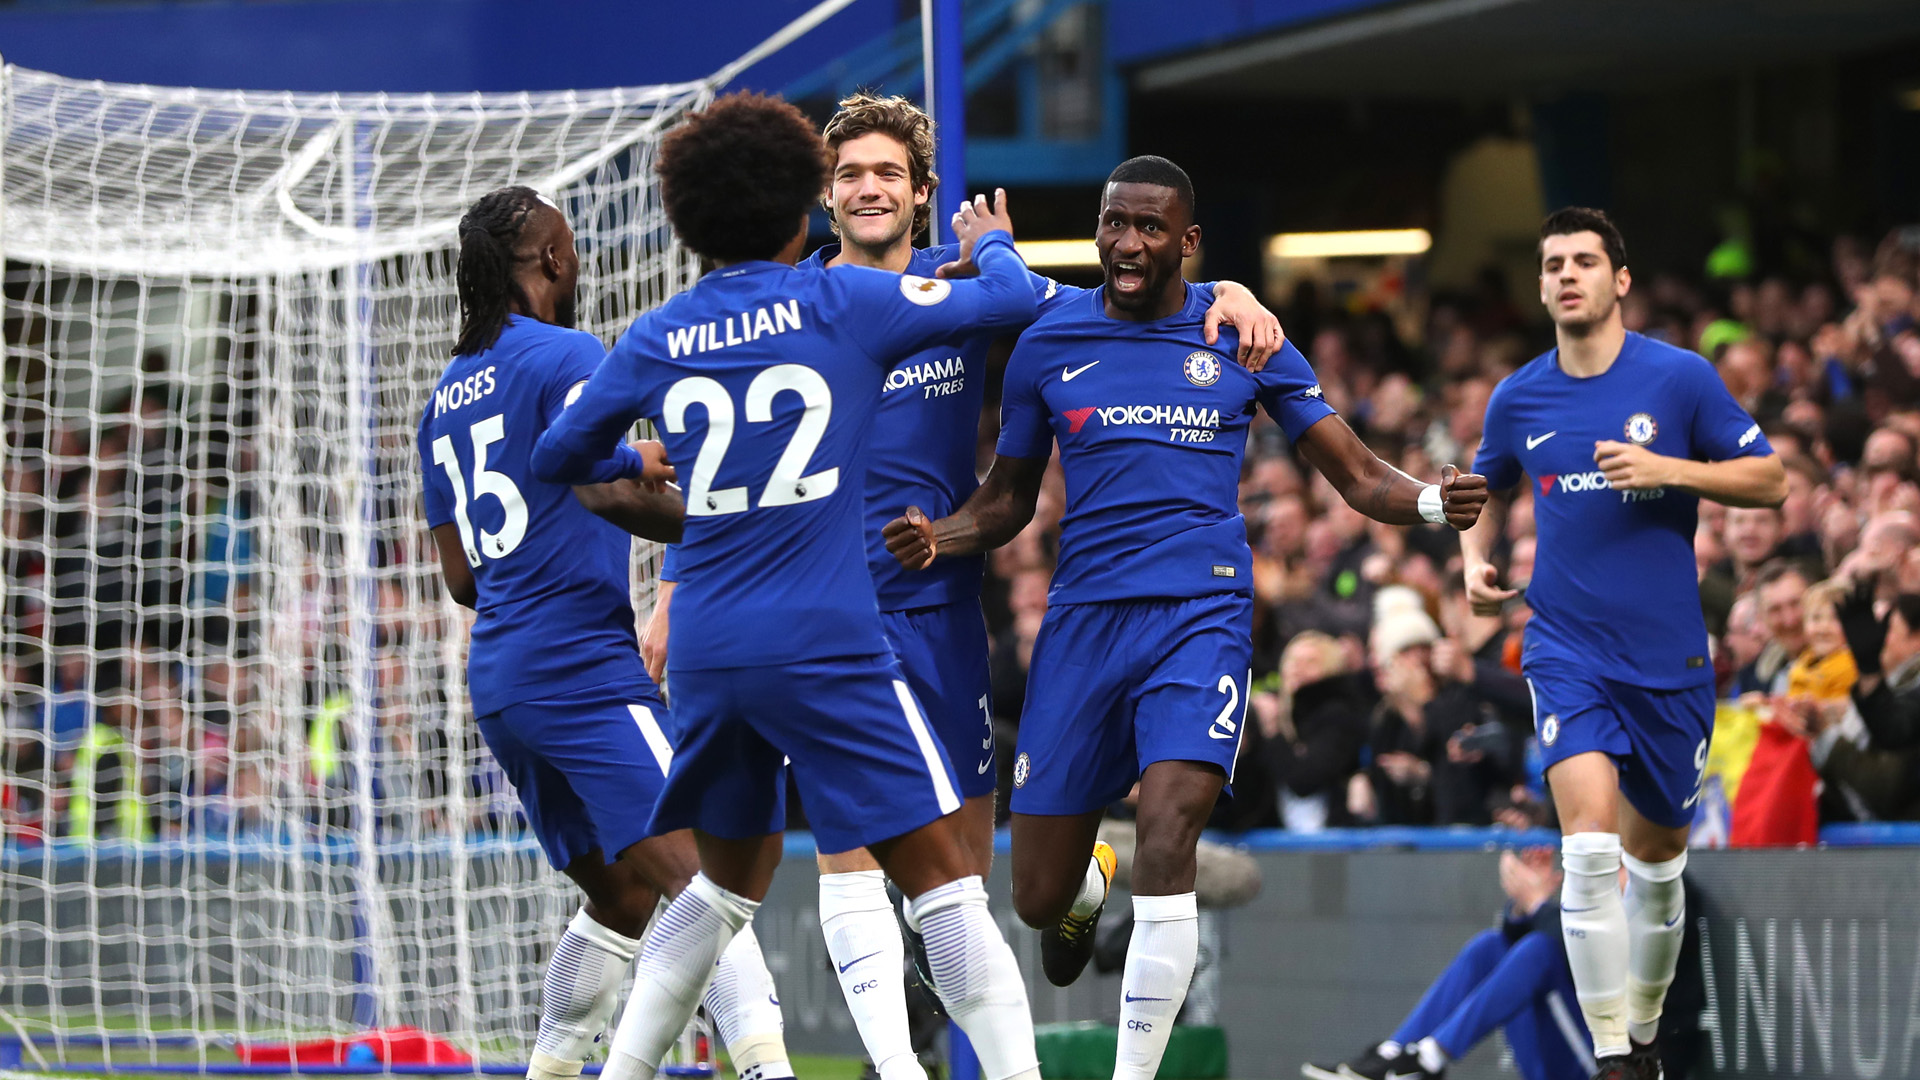 City Chelsea: A Stamford Bridge Too Far